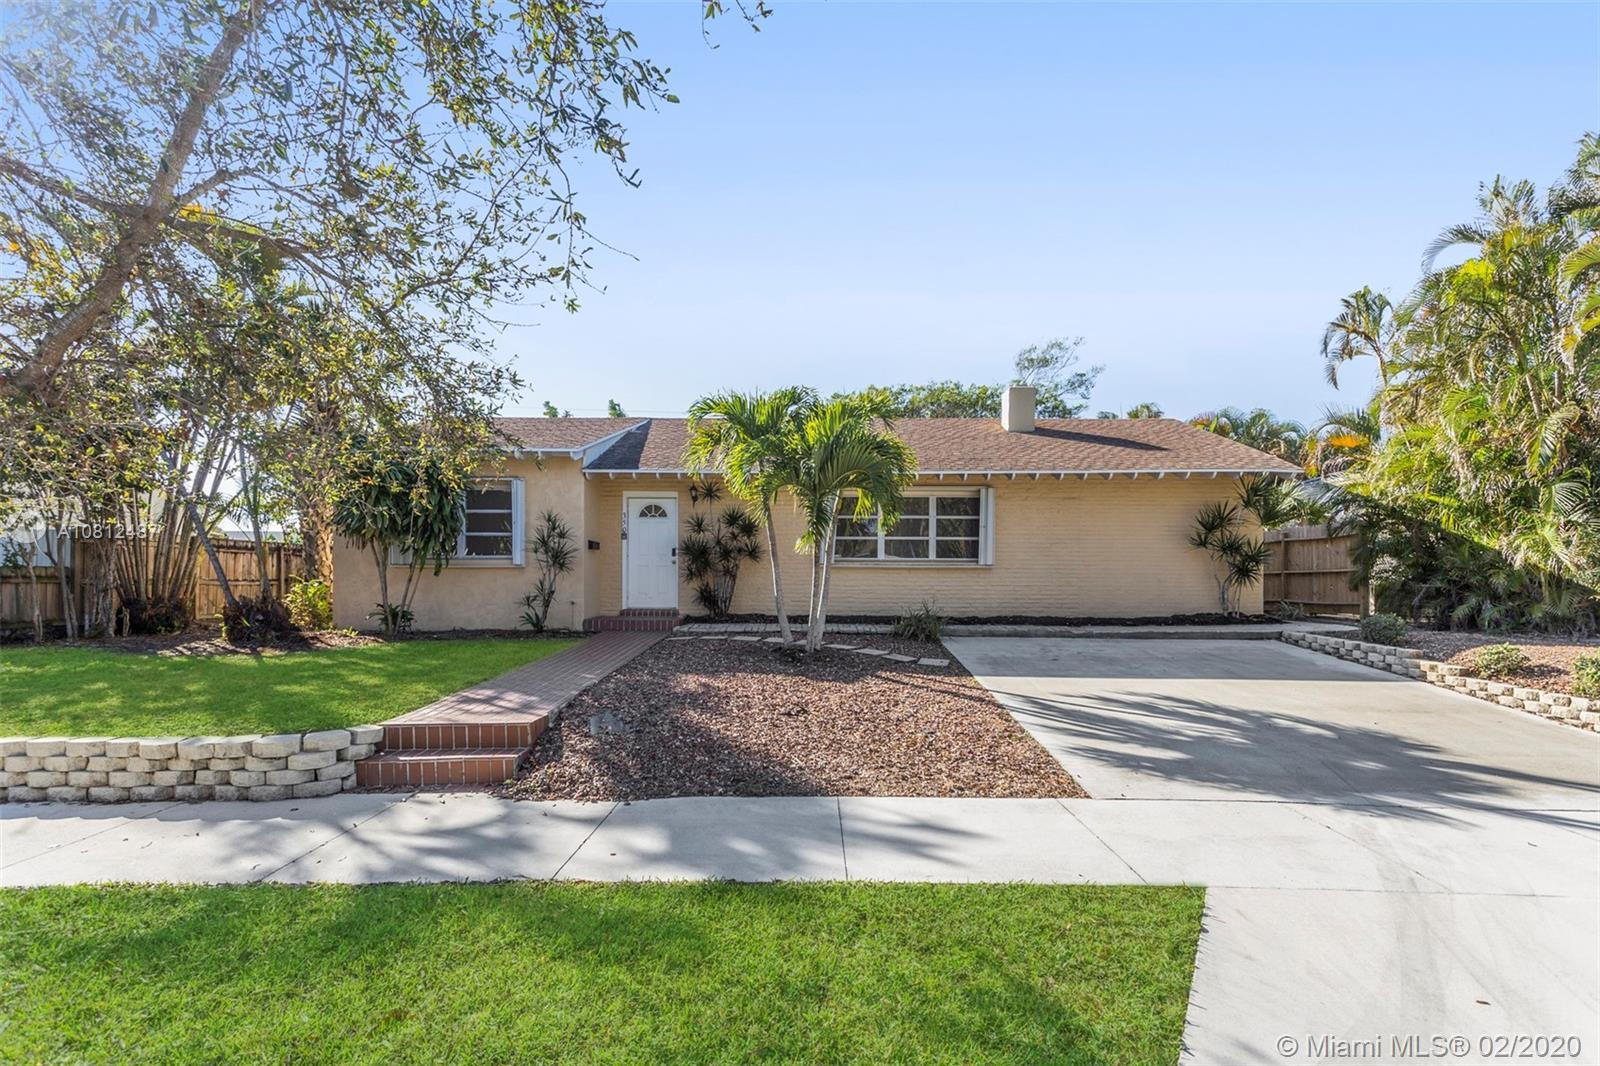 Move in ready ranch home with 4 bedrooms, 2 full baths located near tons of shopping, dining, and en